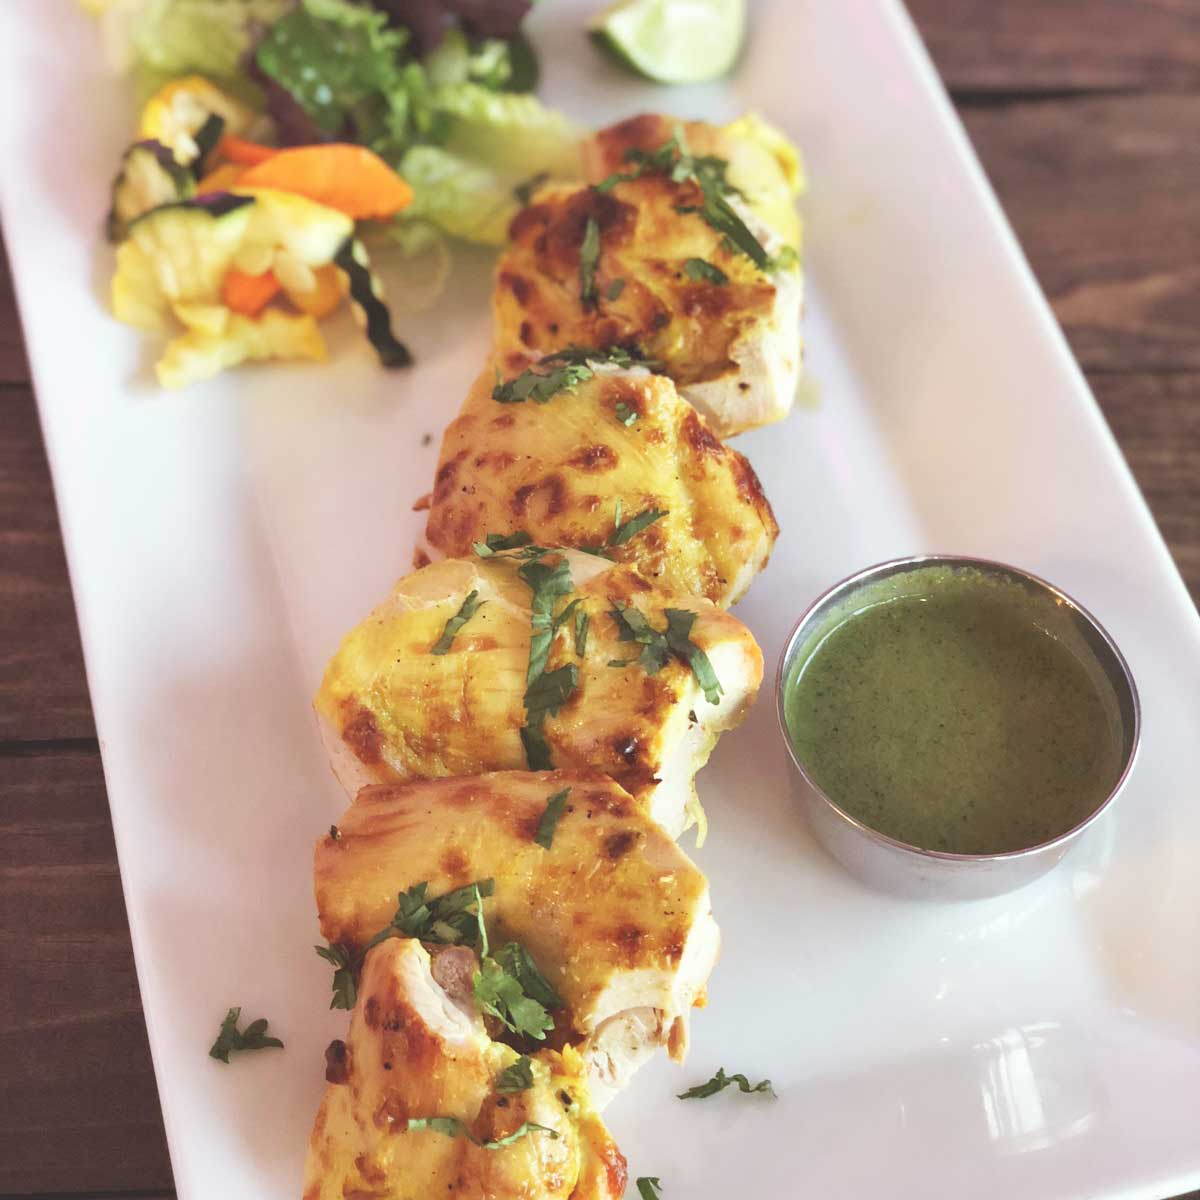 Delicious-Indian-Food-Kebabs-Salt-Lake-Utah.jpg